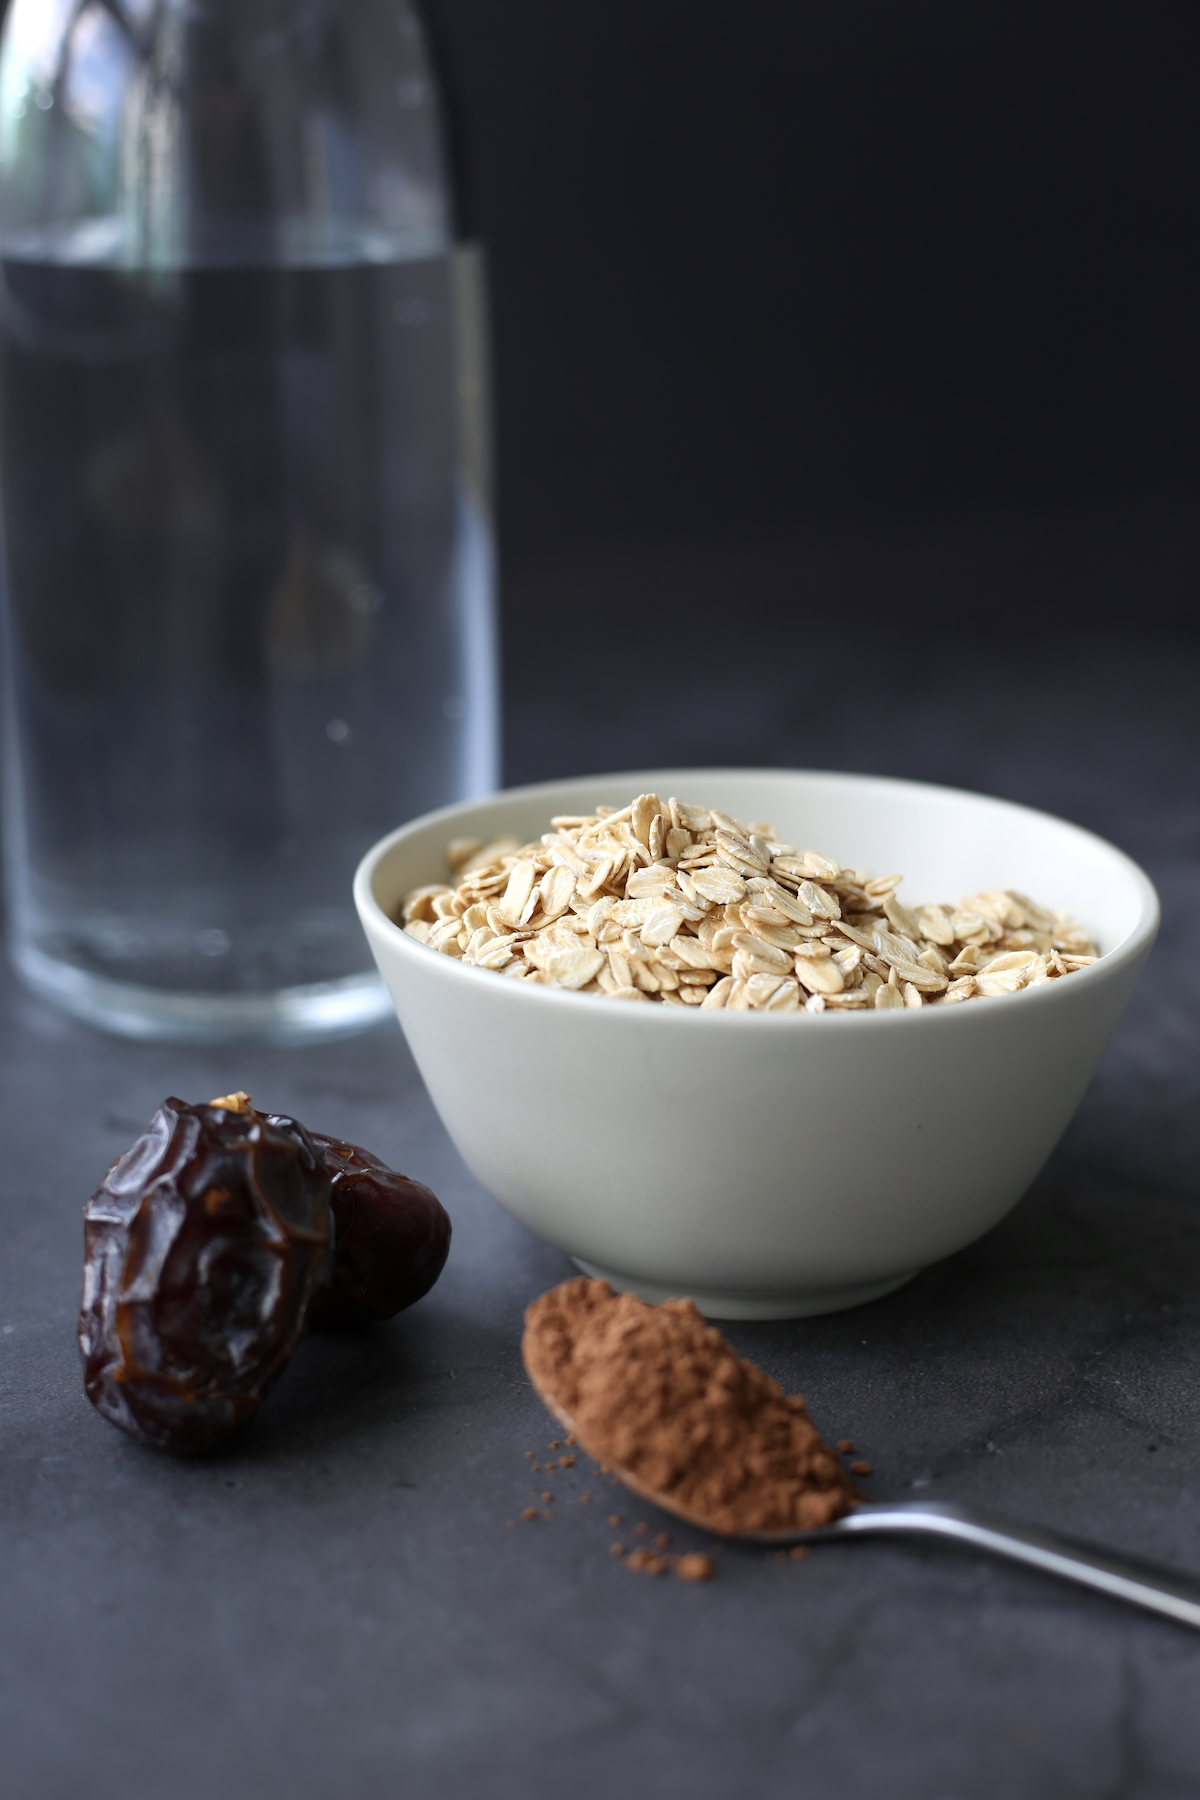 the ingredients for homemade chocolate oat milk layed out on a table